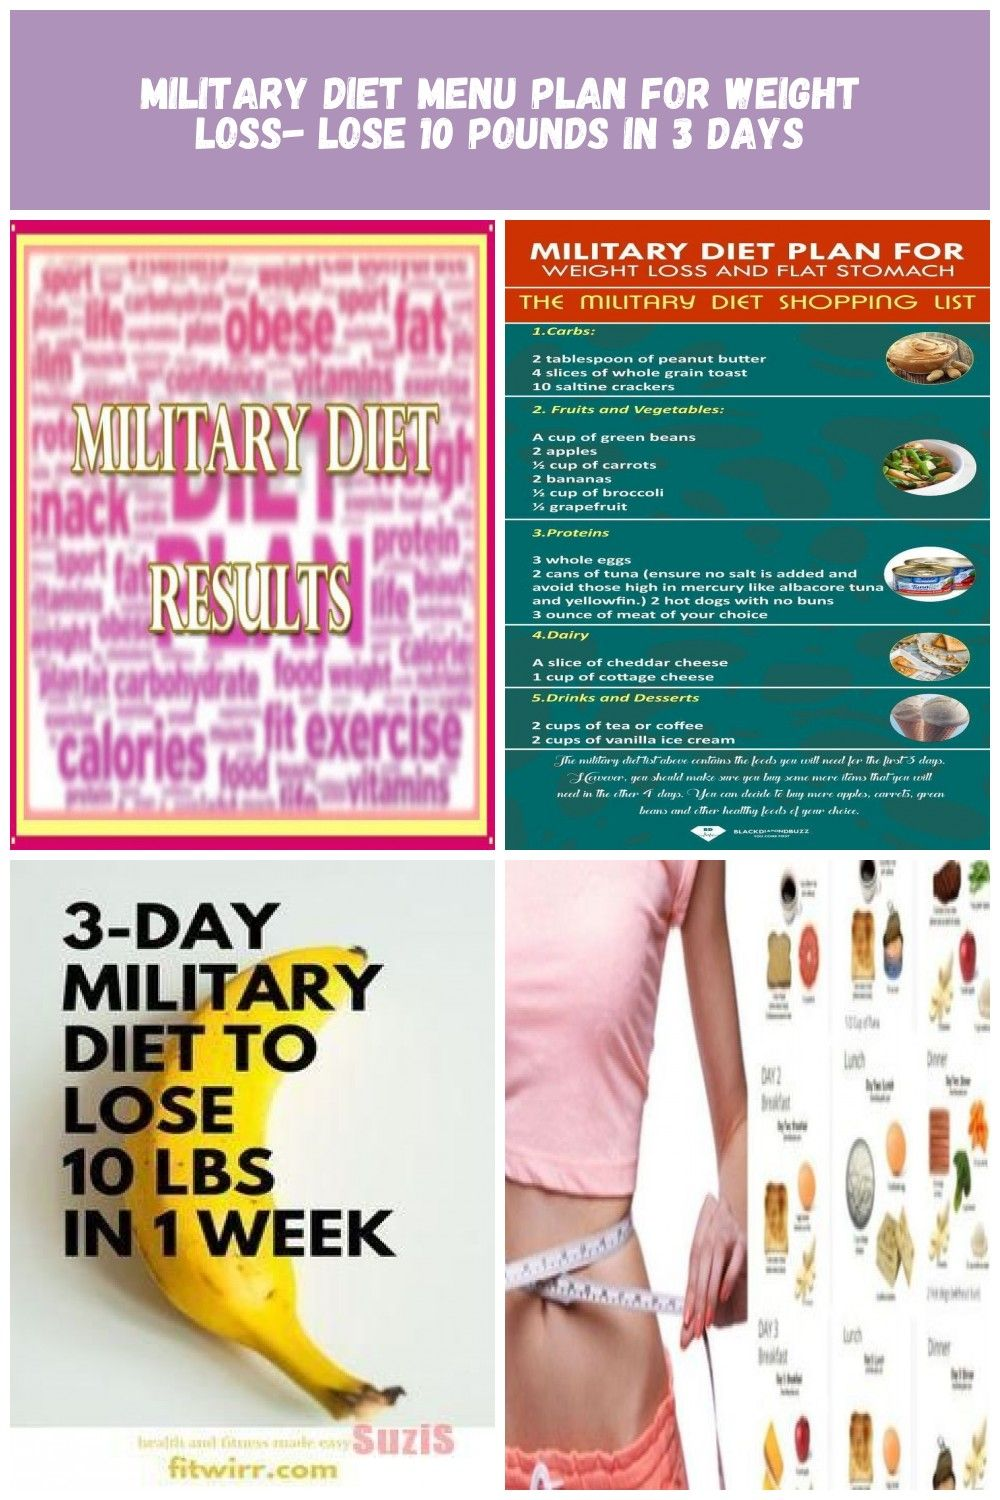 Military Diet Results 3 Day Military Diet Results 3 Day Diet Results Army Diet Results Military Diet 3 Day Milita Military Diet Army Diet Military Diet Results